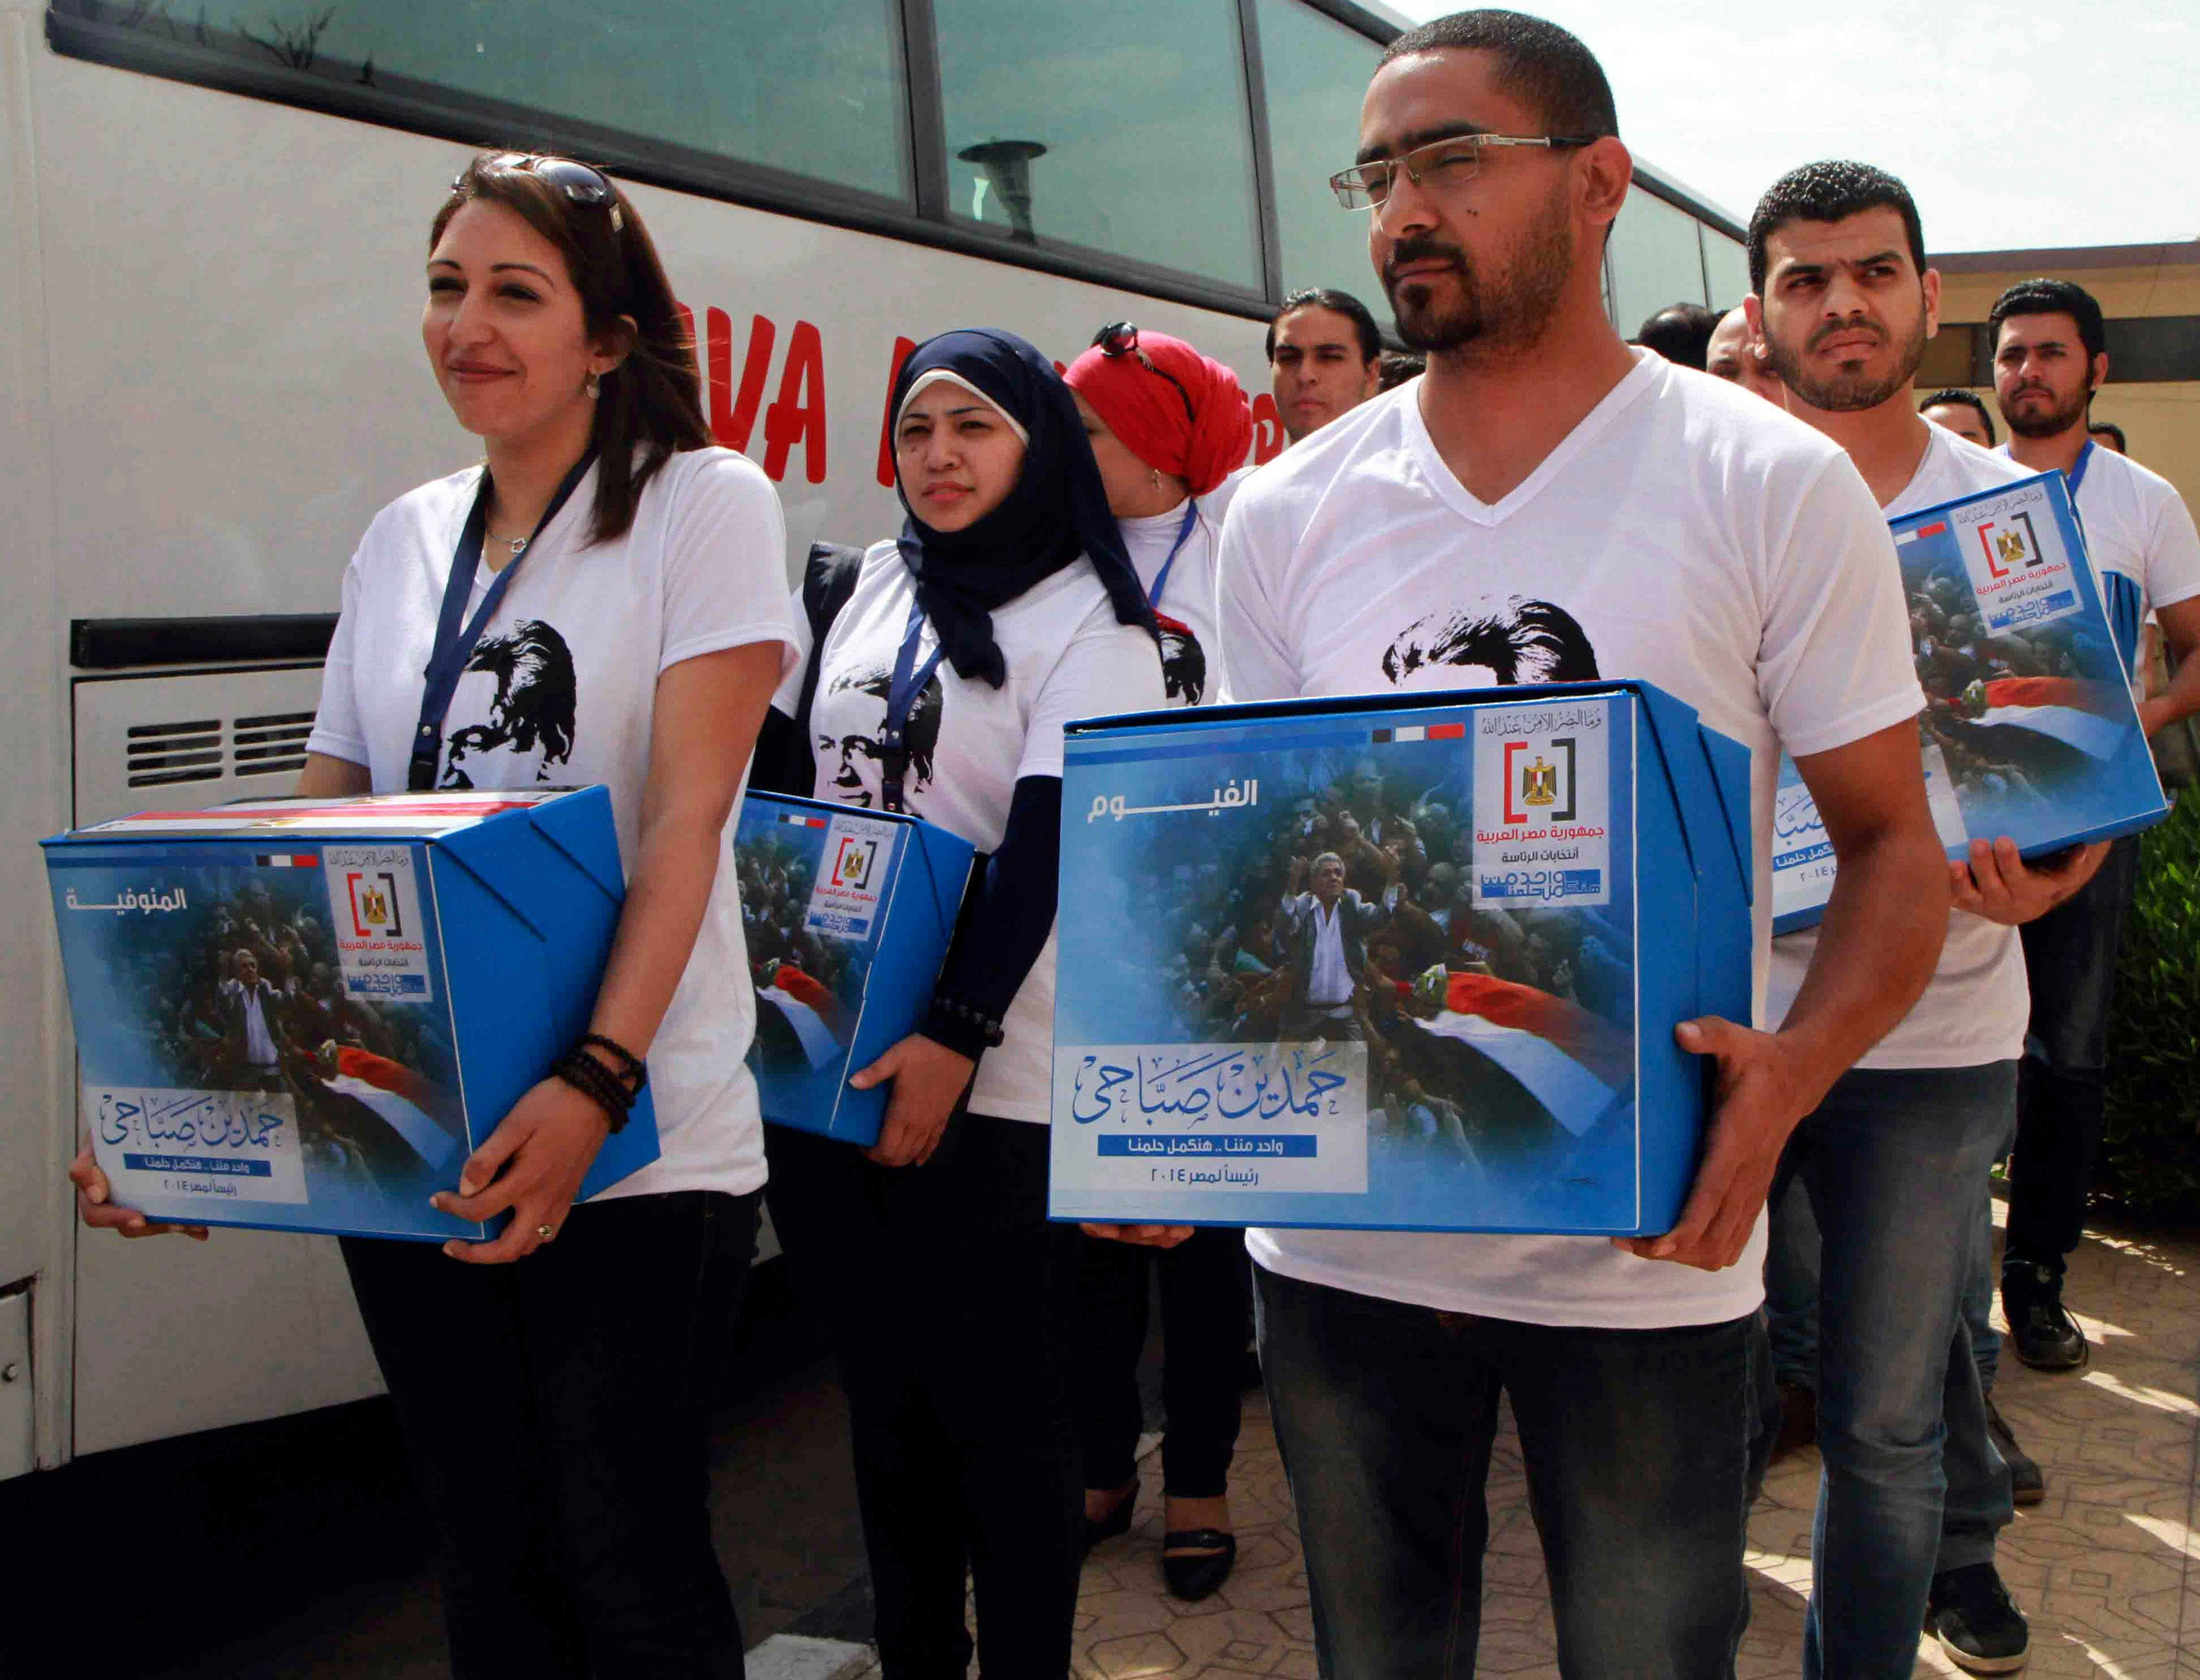 Youths working for leftist politician Hamdeen Sabahi submit boxes of endorsements in Cairo, April 19, 2014. (Reuters)